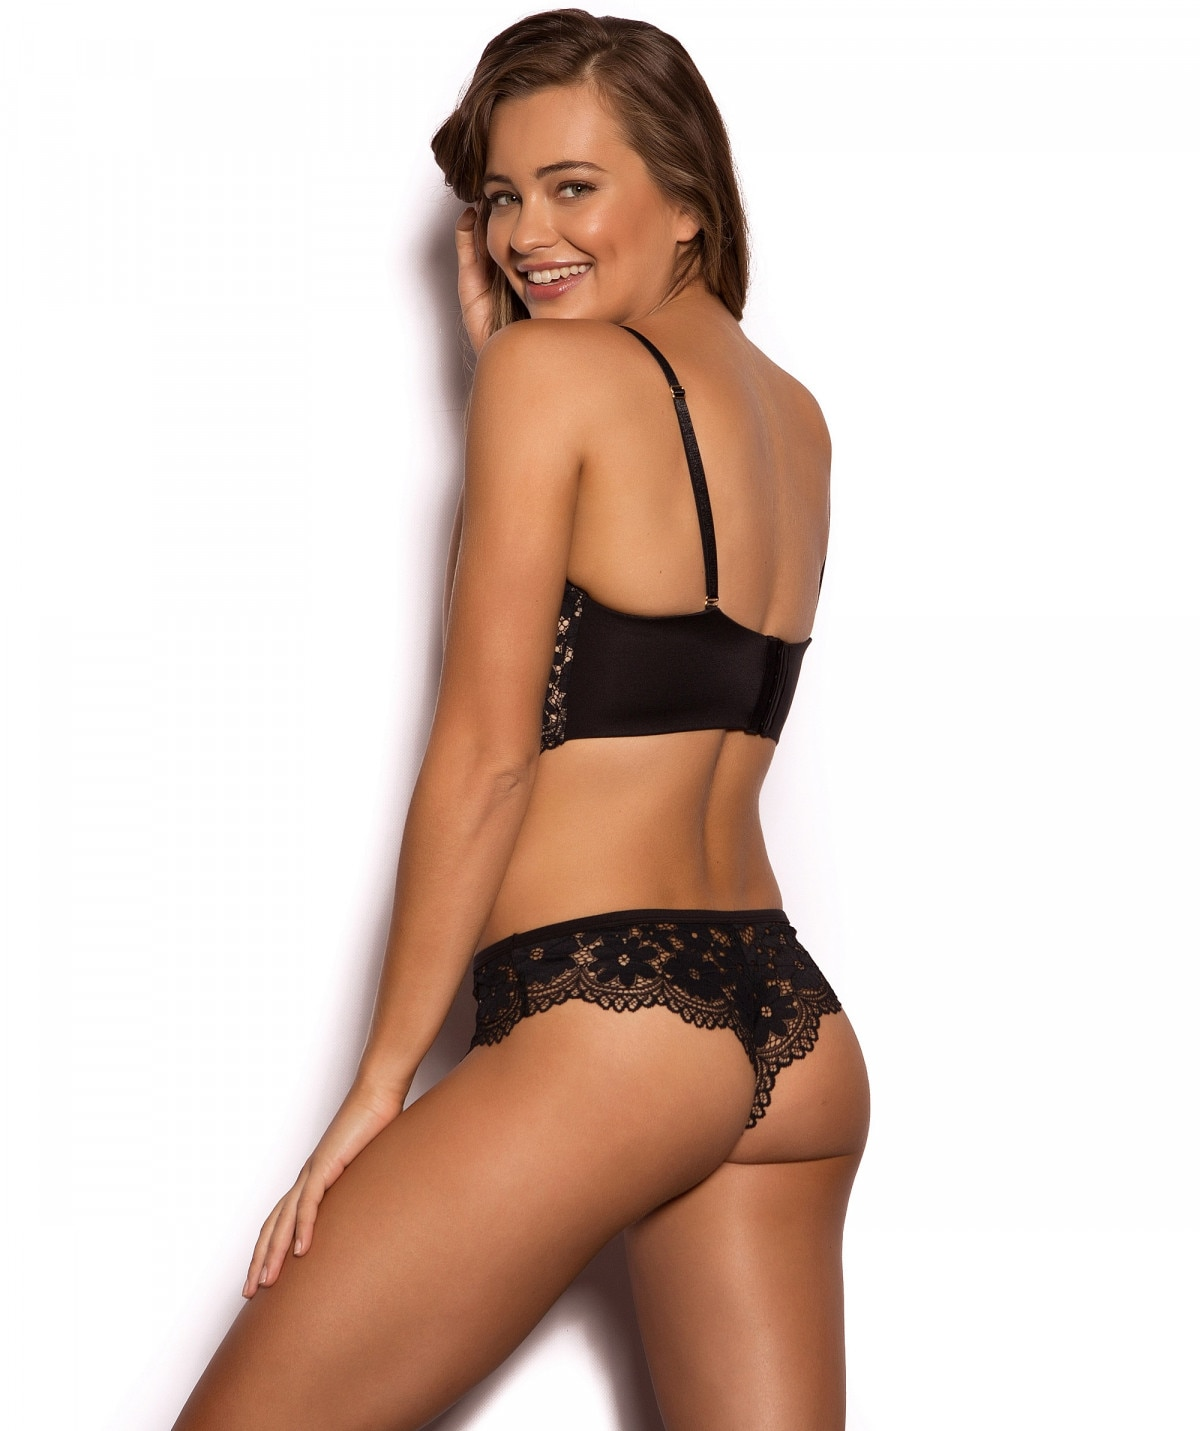 Brodie Blush Lingerie Set - Black 6e591dbb8